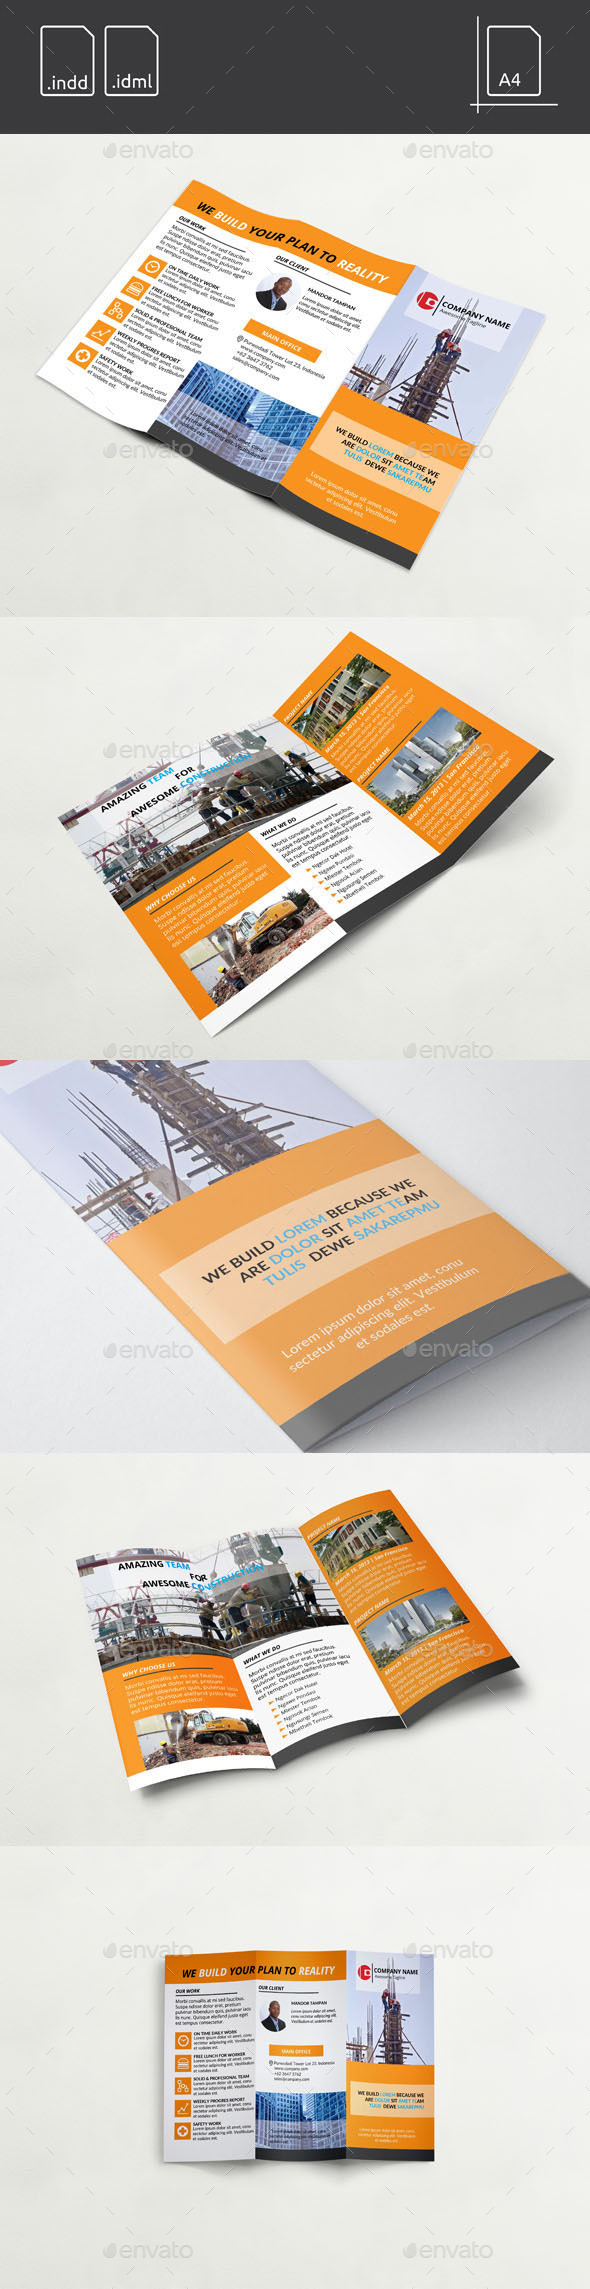 GraphicRiver Worker Construction Tri-Fold Brochure 11327156